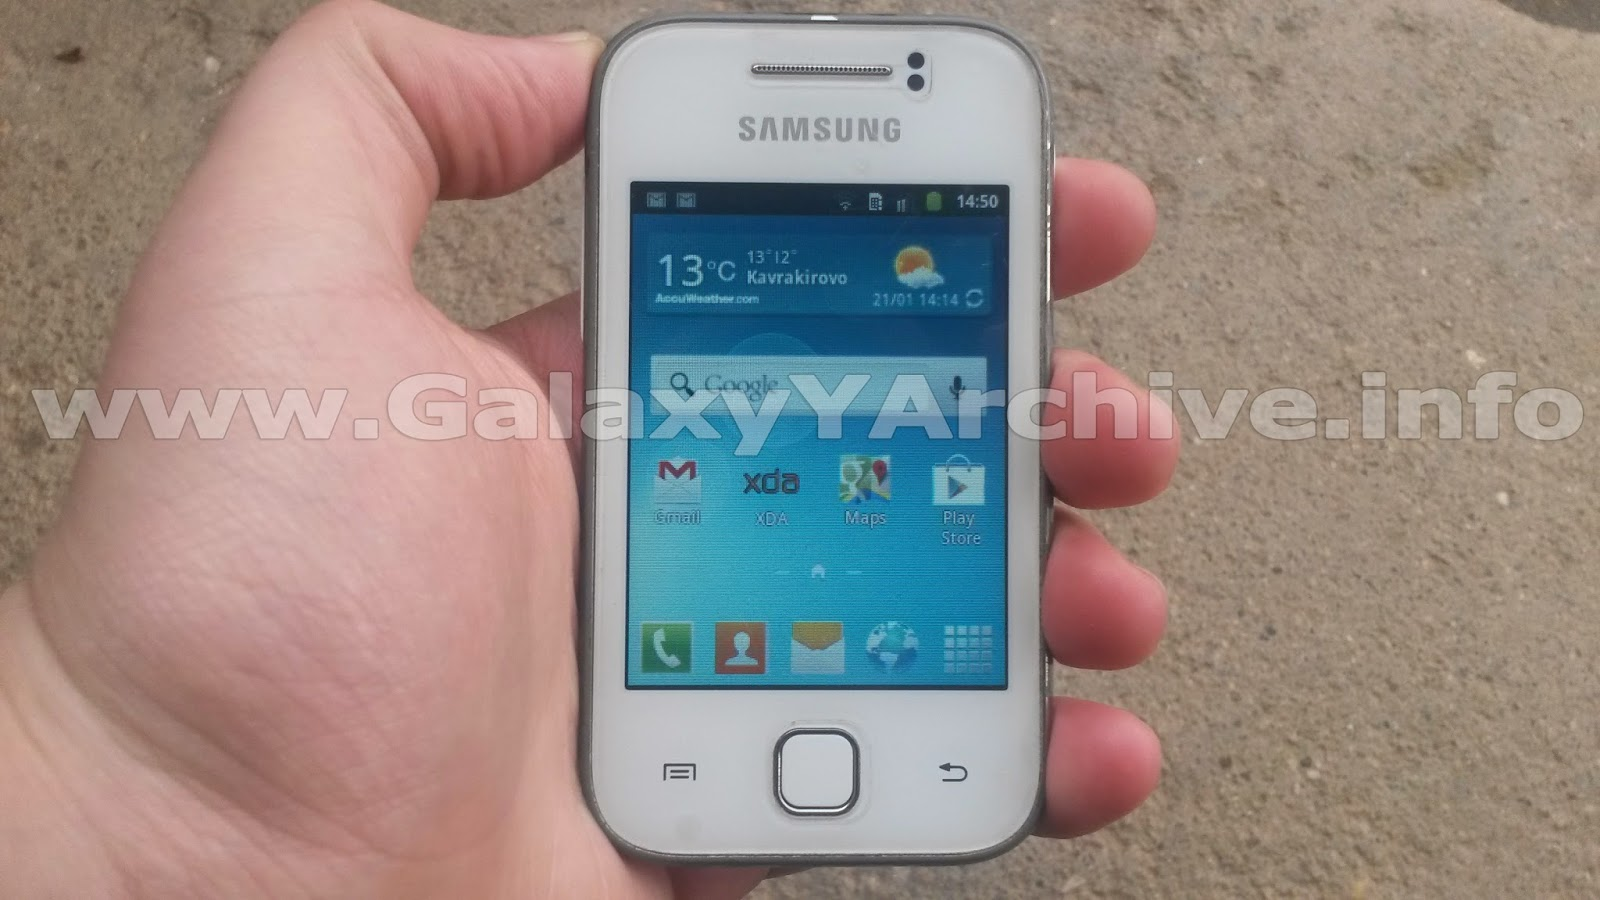 Note 3 Launcher for Galaxy Y GT-S5360 - Samsung Galaxy Young